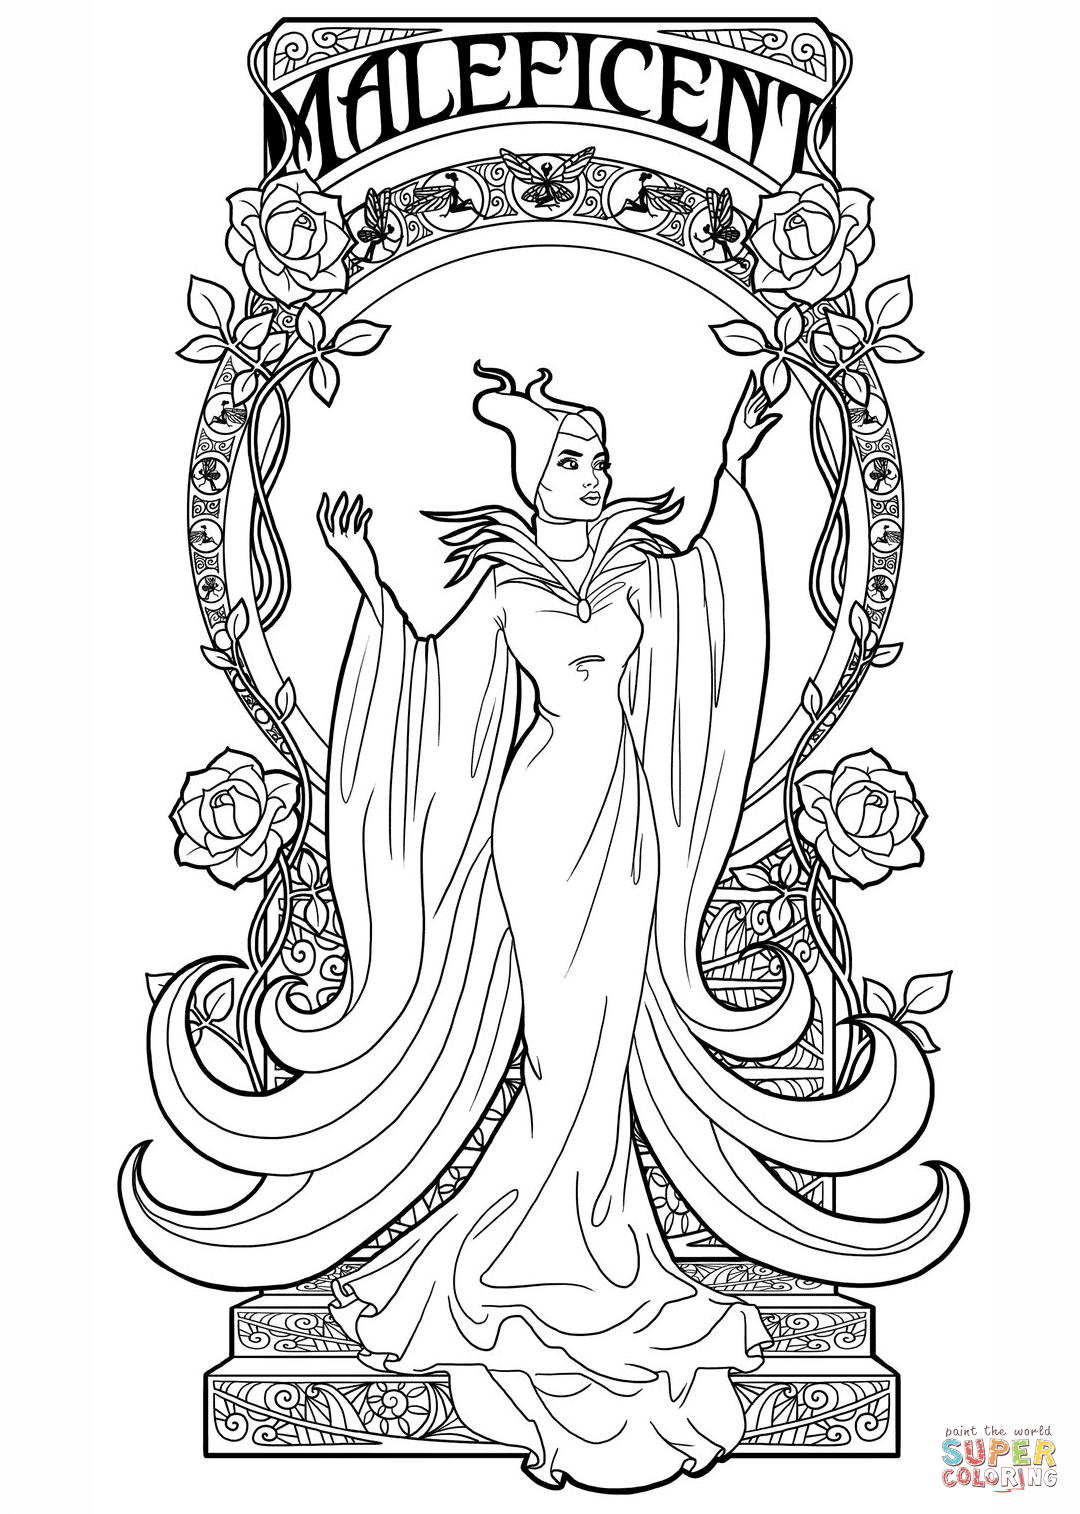 1080x1514 Maleficent Coloring Pages